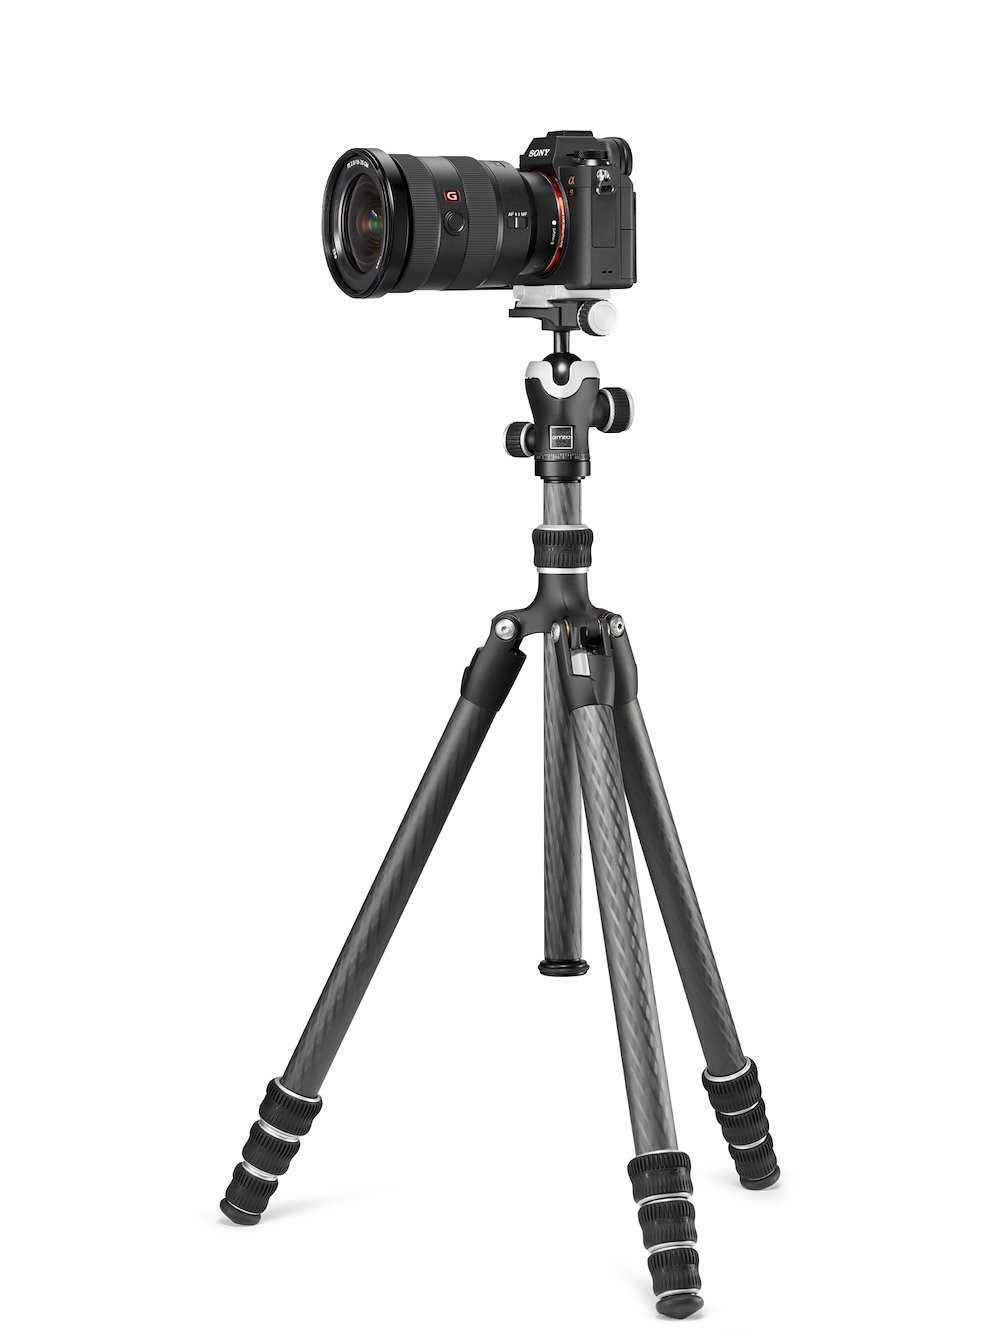 New Gitzo Traveler Tripod Kit for Sony a9 and a7 Cameras